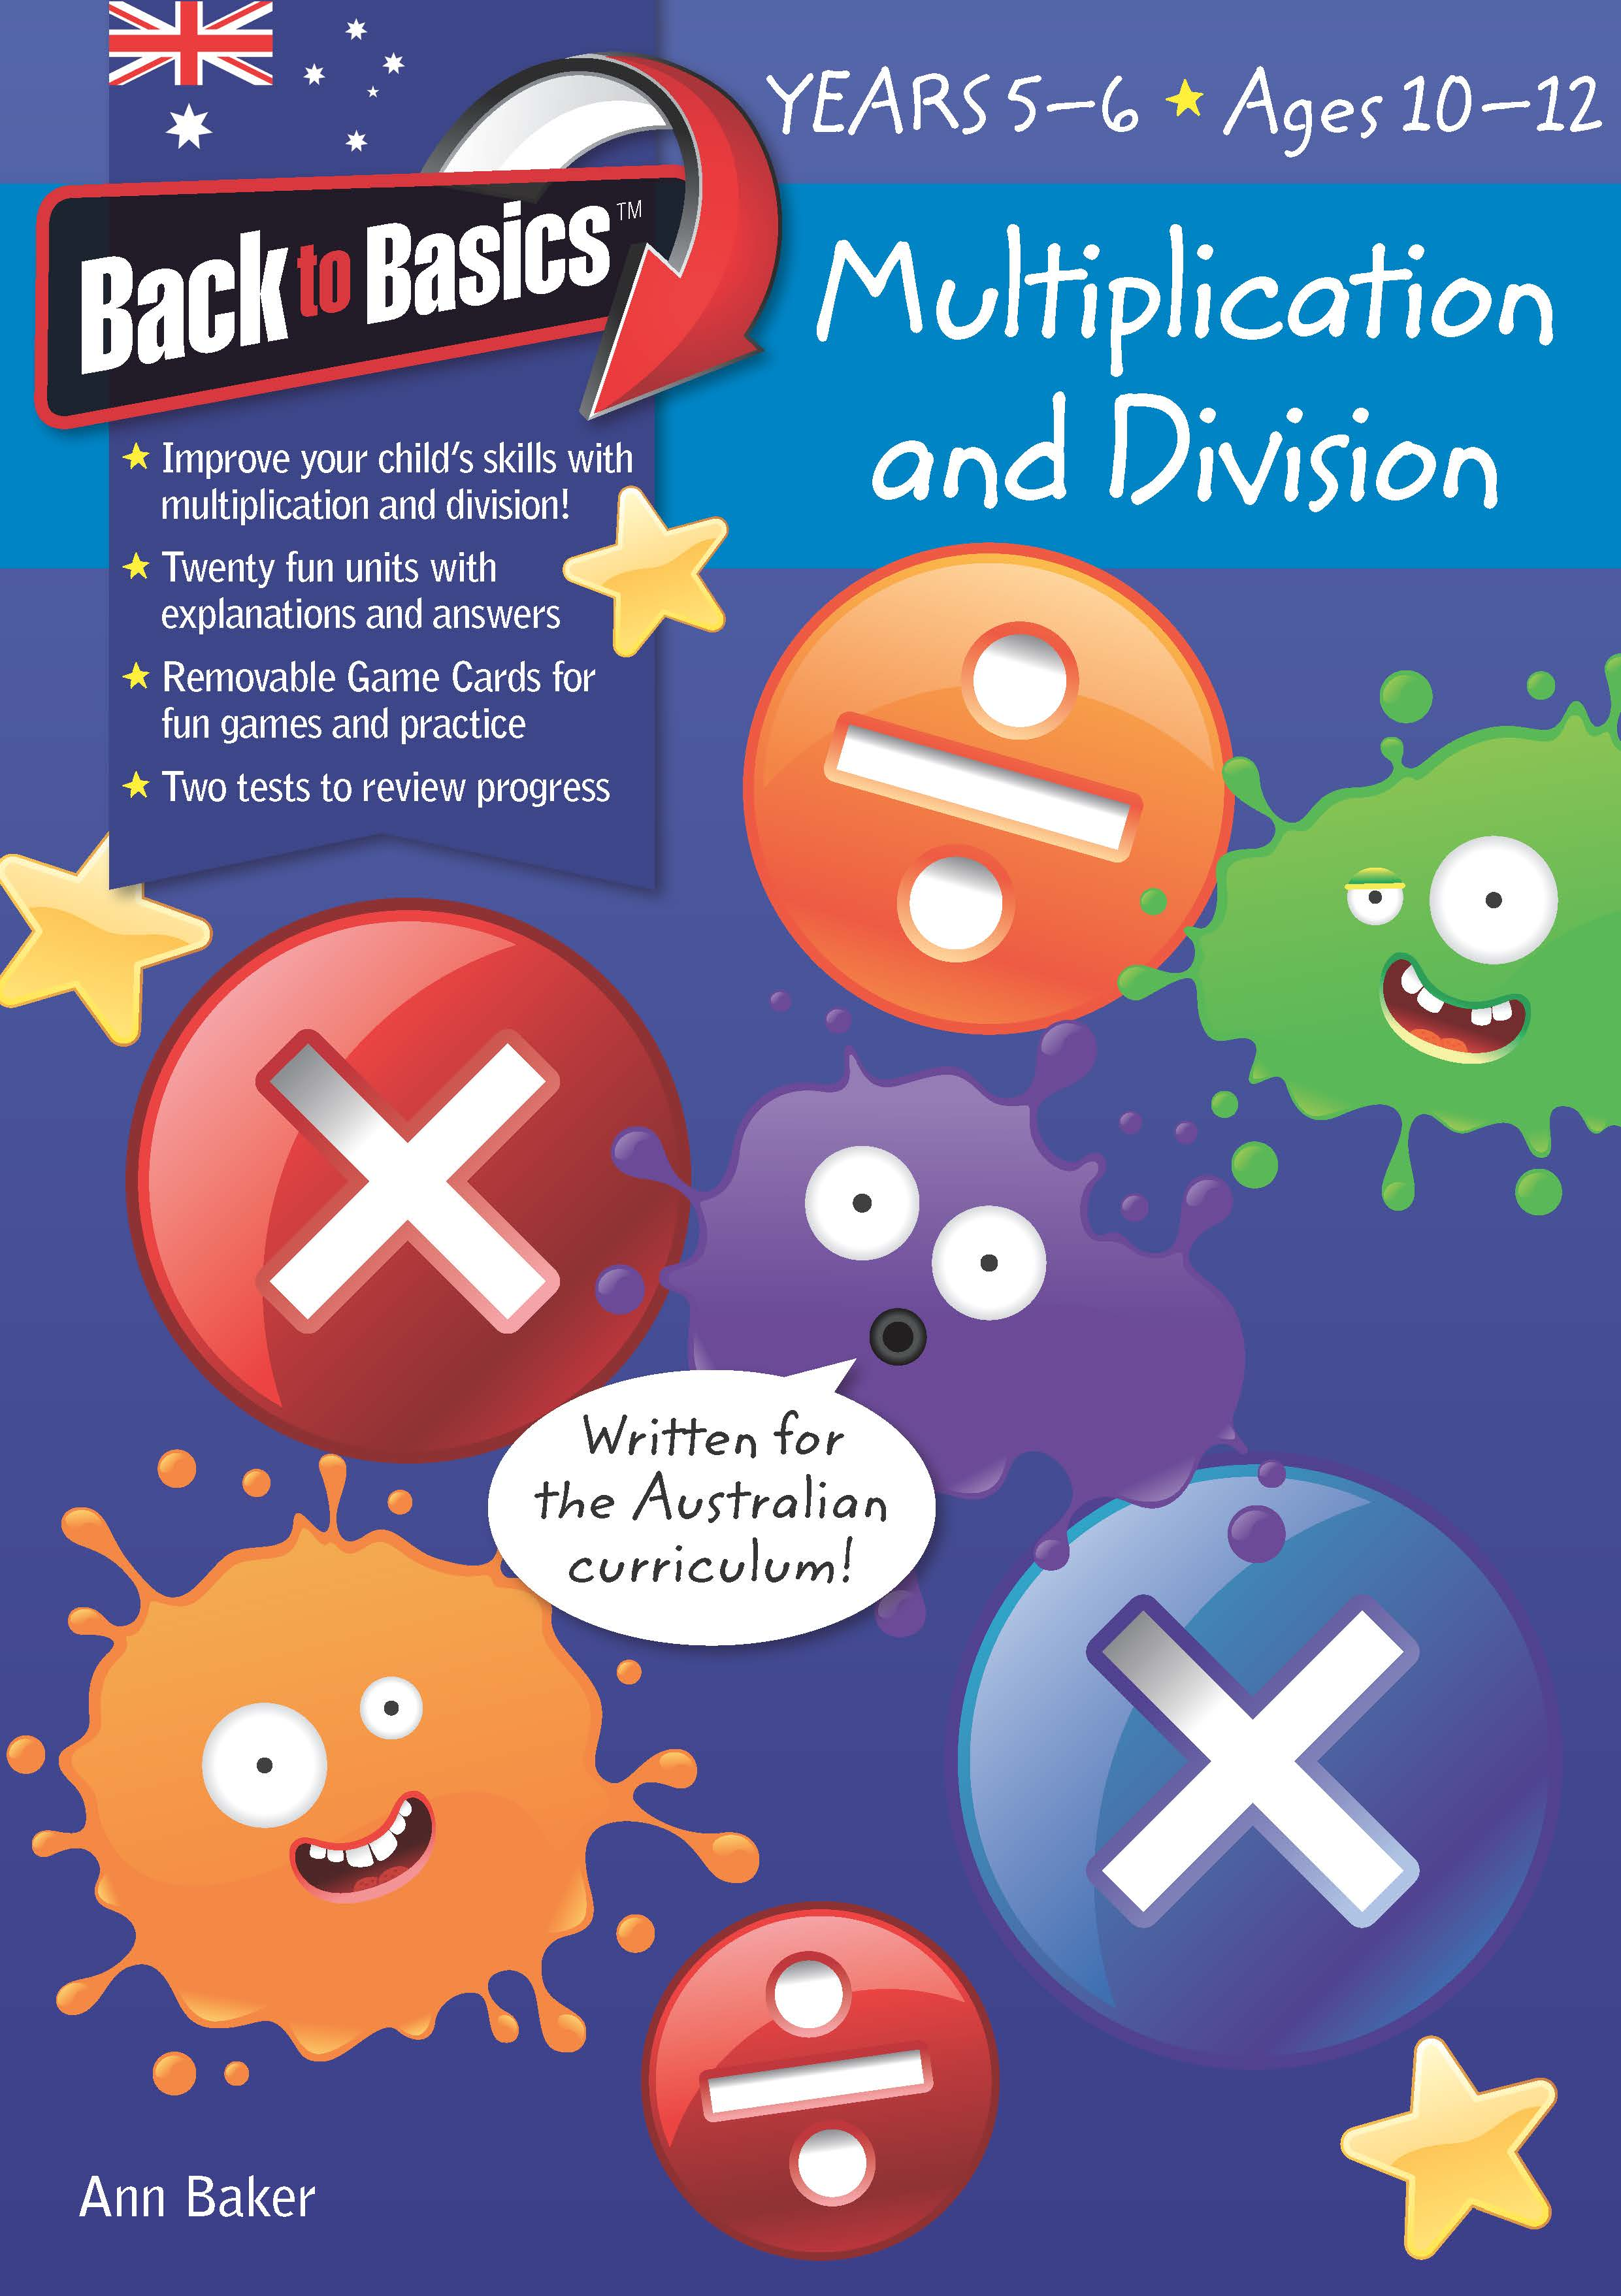 Back to Basics - Multiplication & Division Years 5-6